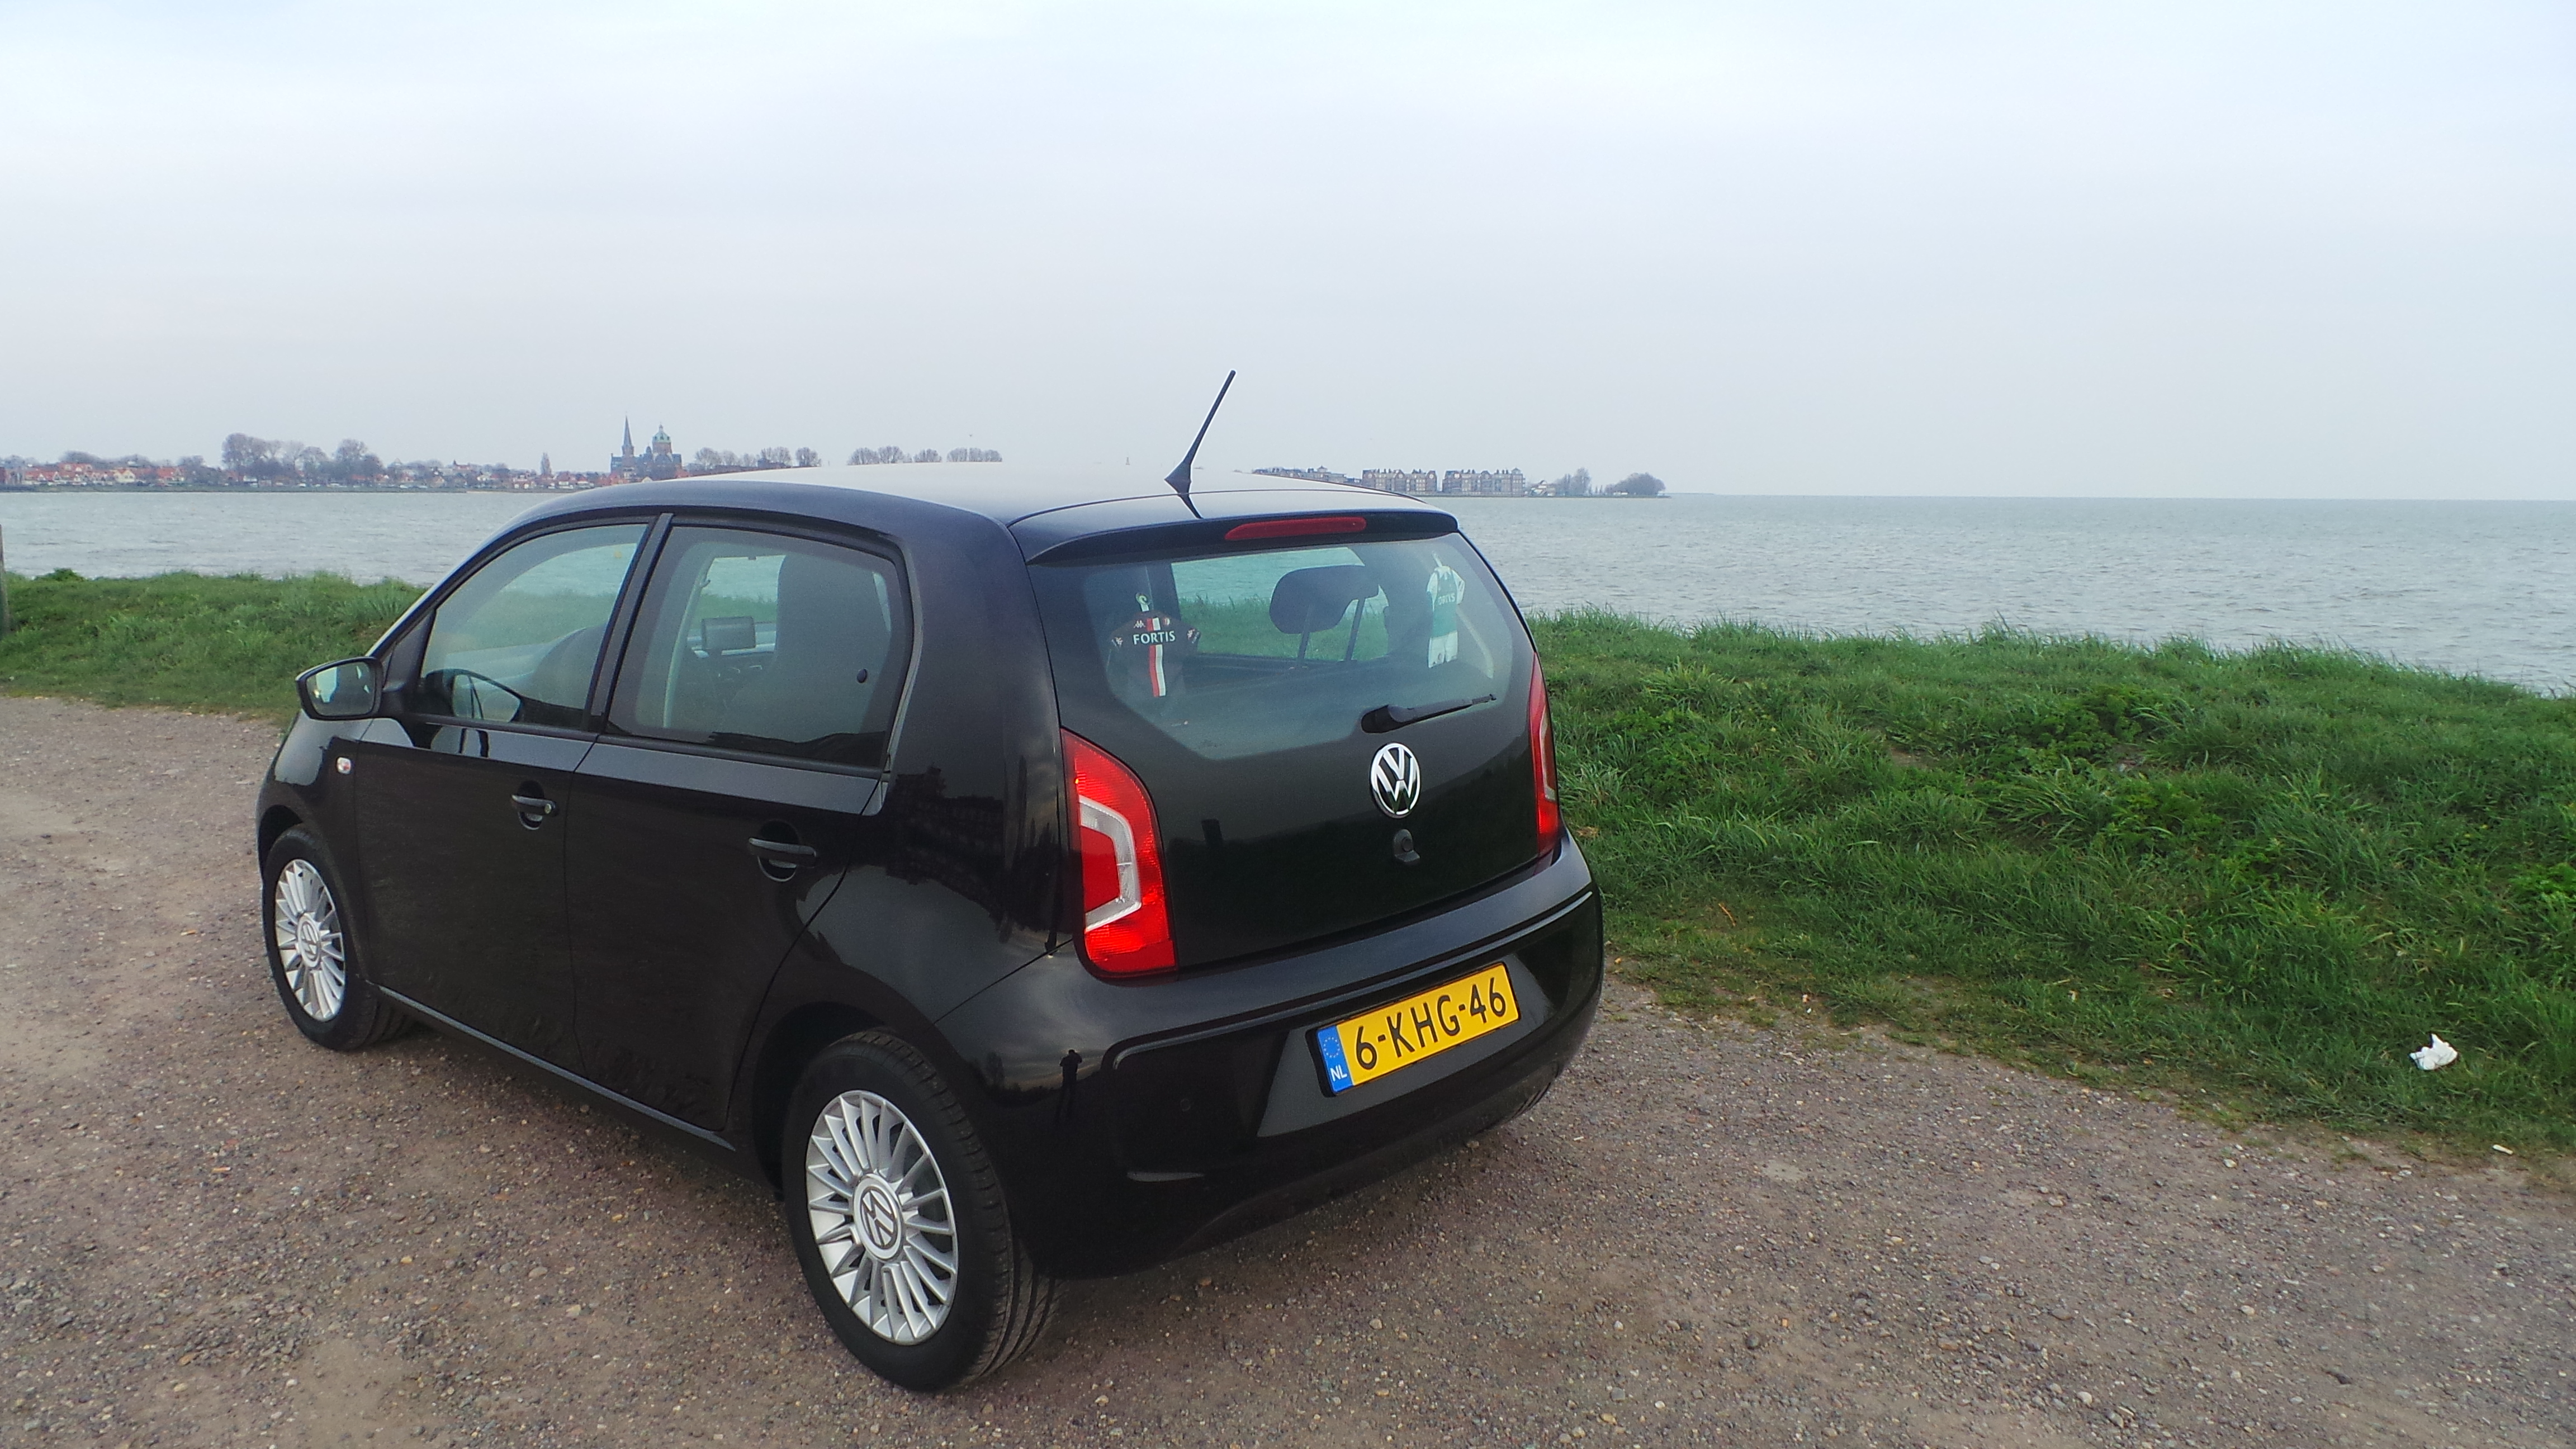 vw up forum nederland toon onderwerp volkswagen high. Black Bedroom Furniture Sets. Home Design Ideas